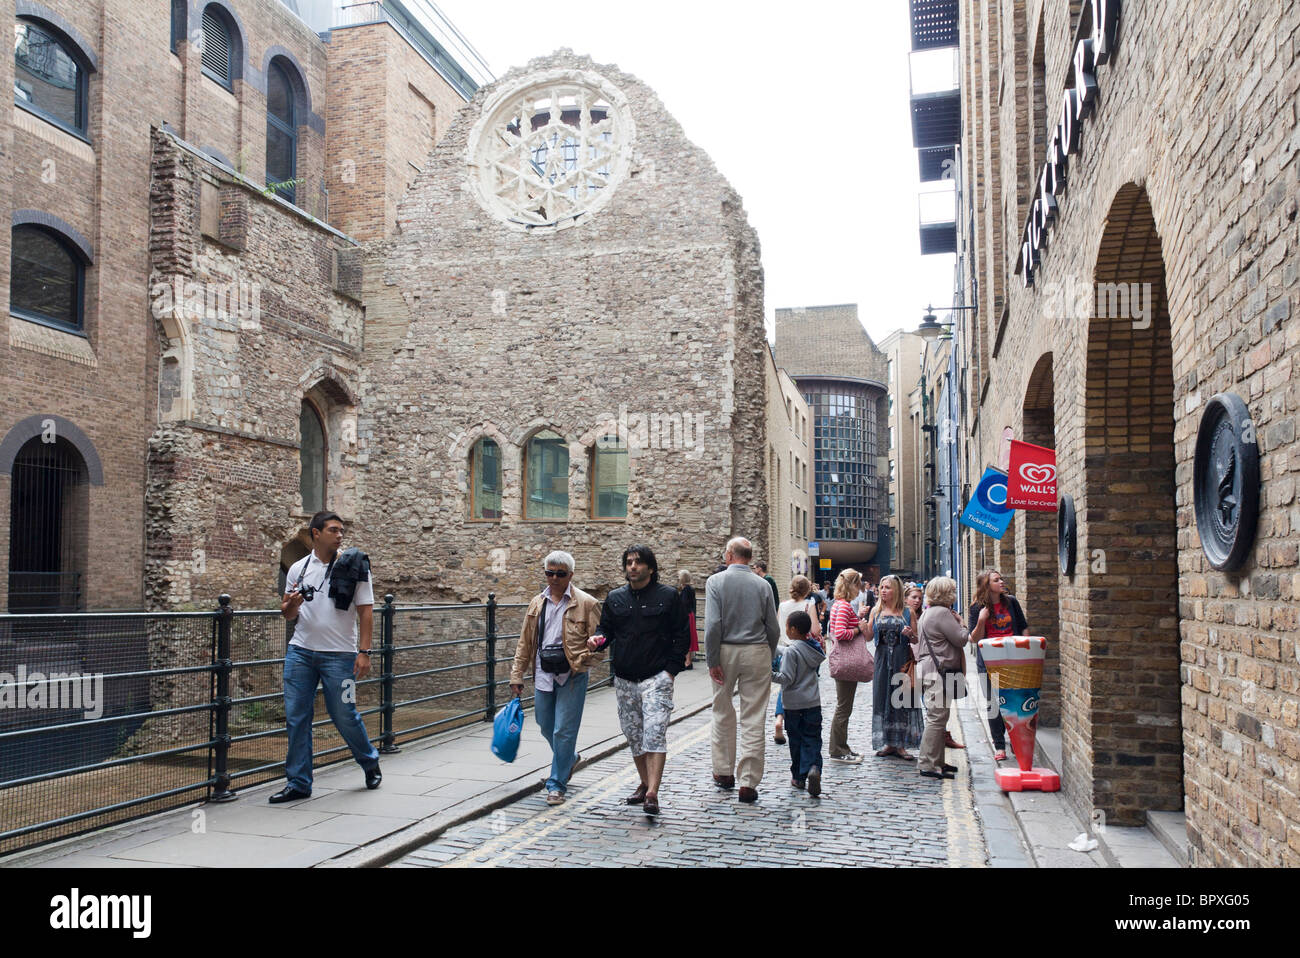 Remains of Winchester Palace - Southwark - London - Stock Image